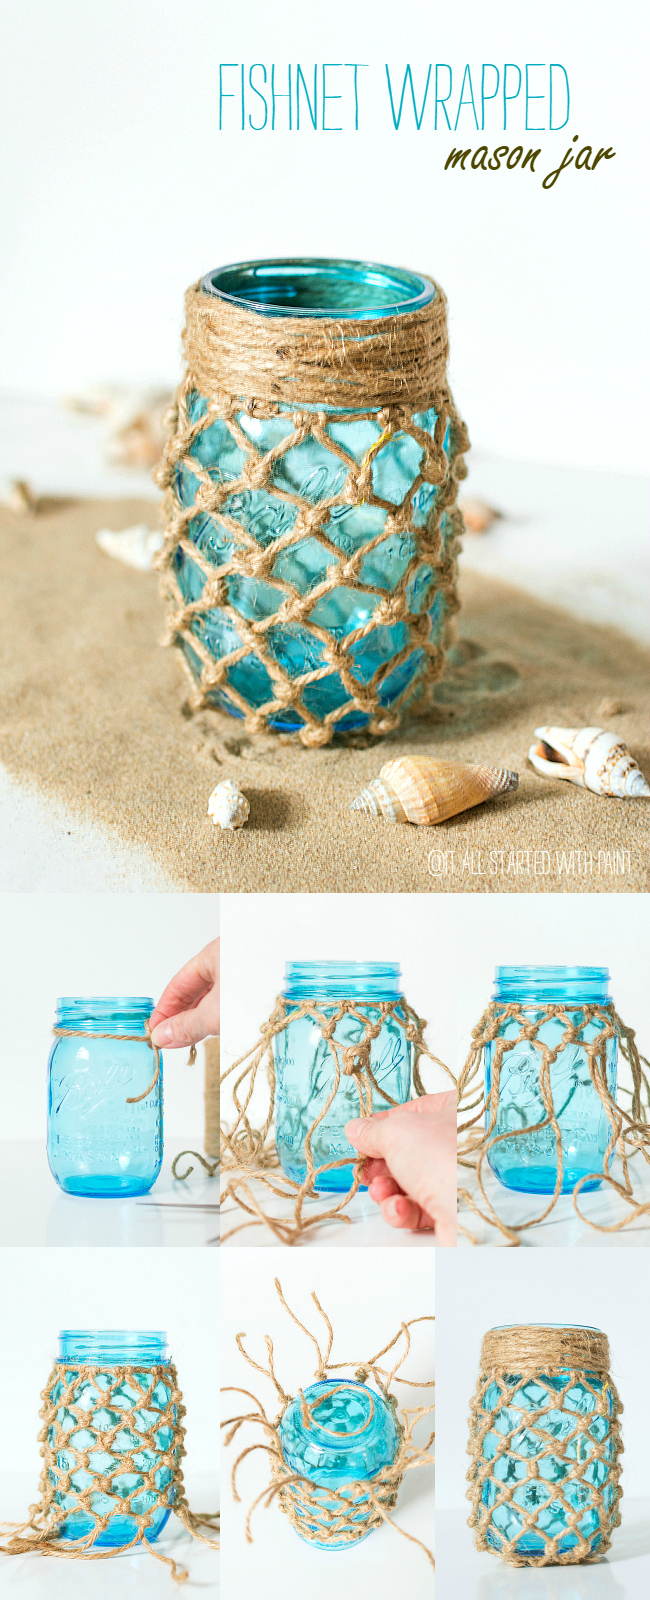 DIY fishnet wrapped beach wedding mason jars